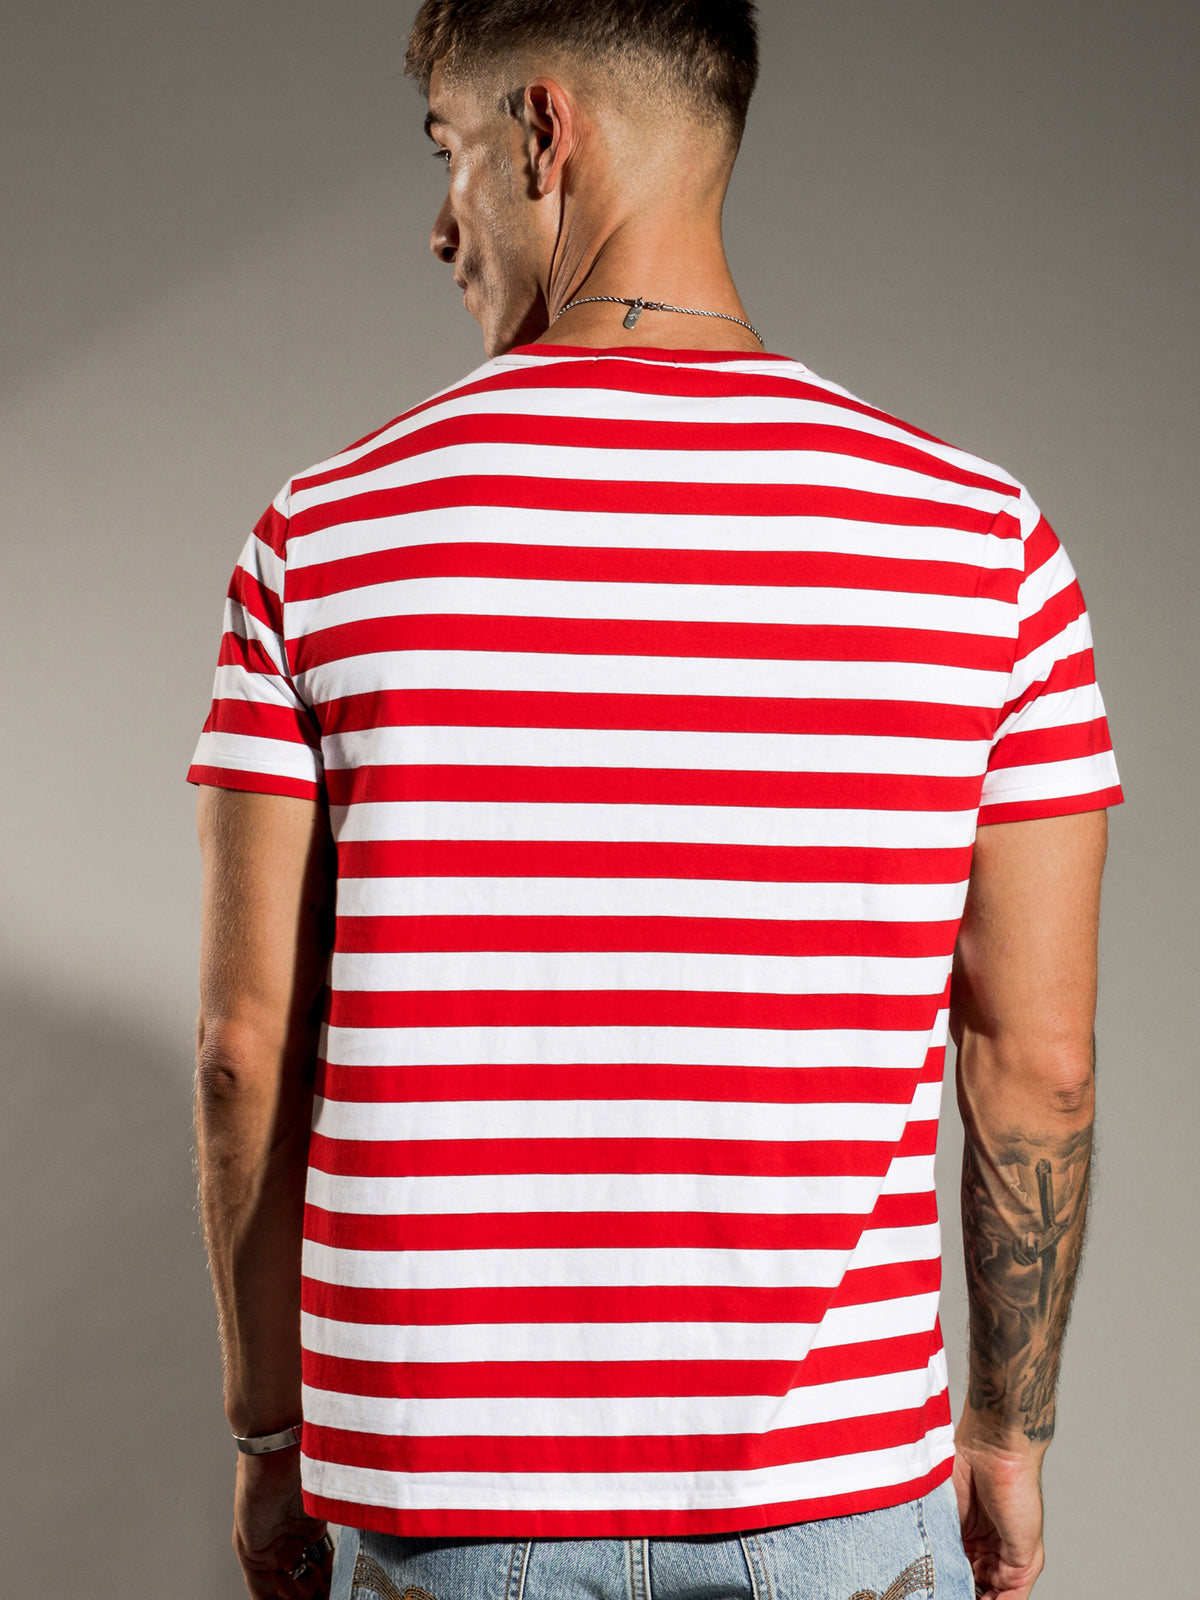 Bold Striped T-Shirt in Red & White